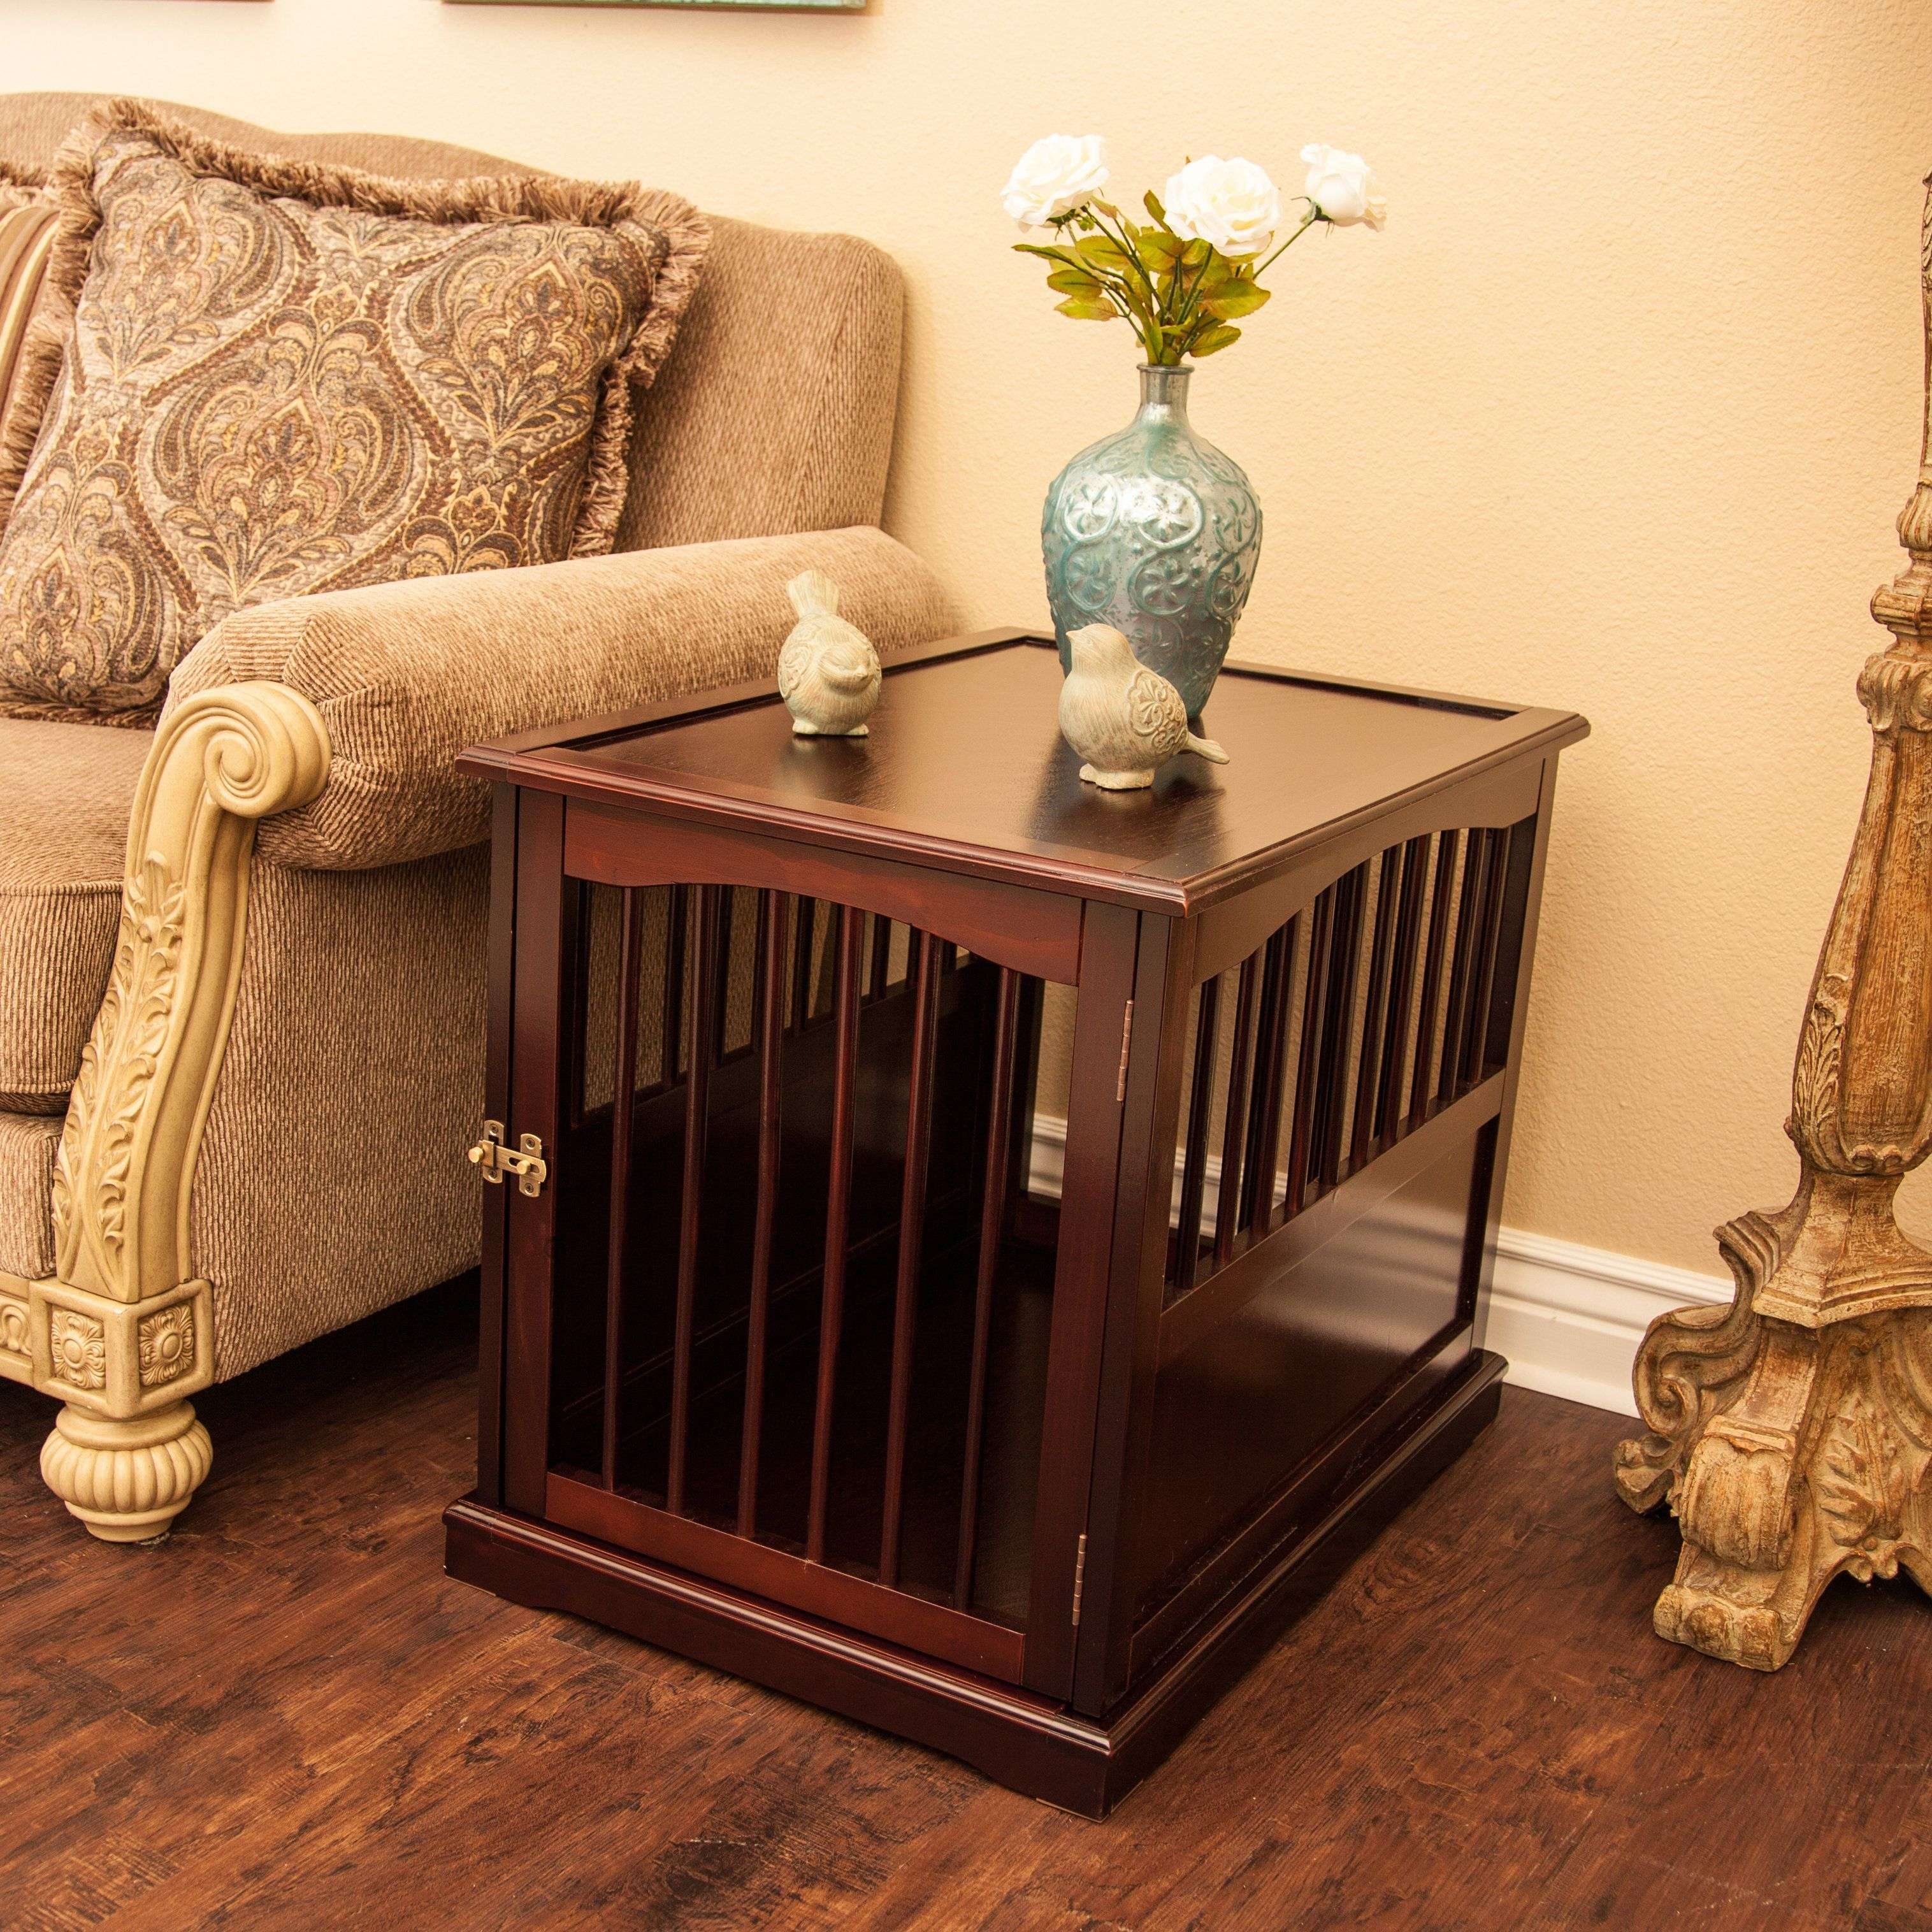 Build your own dog crate end table crate end tables dog